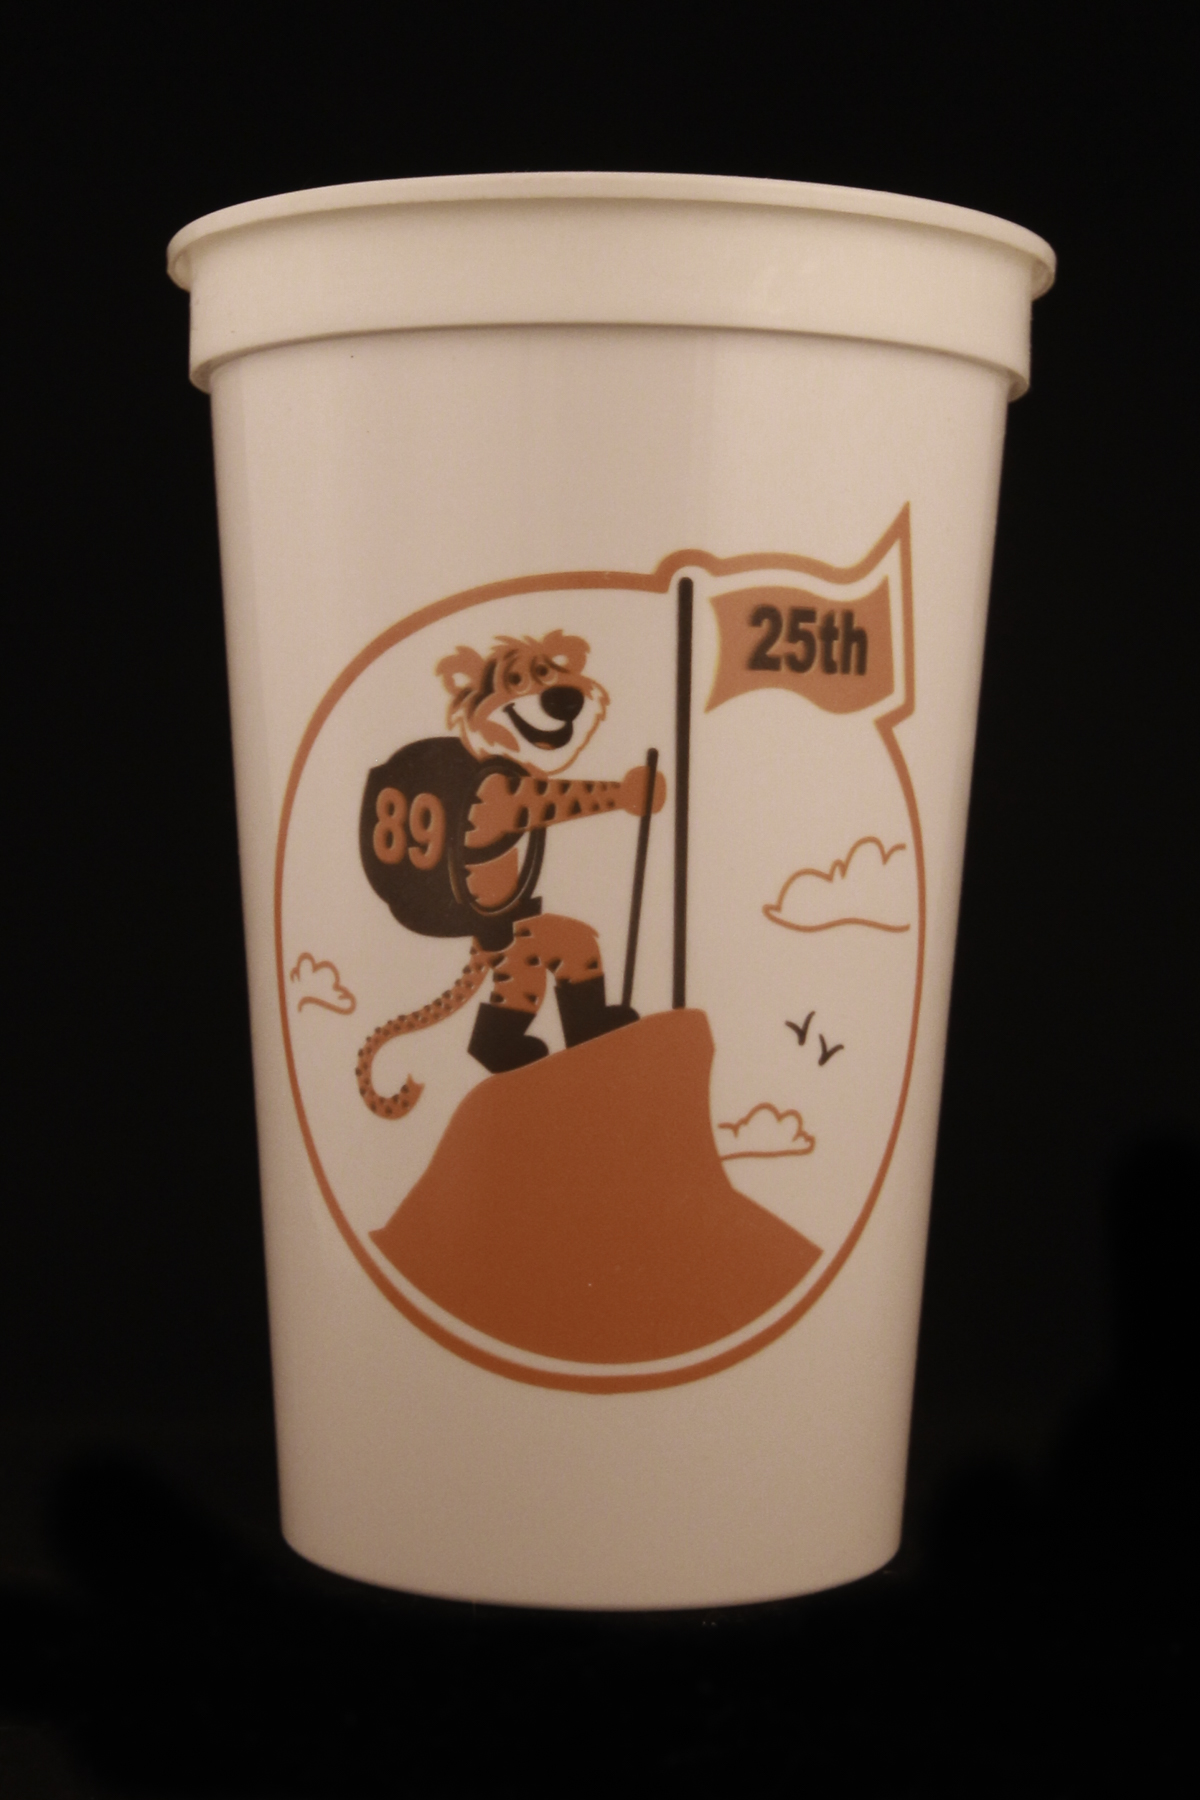 1989 Beer Cup 25th Reunion